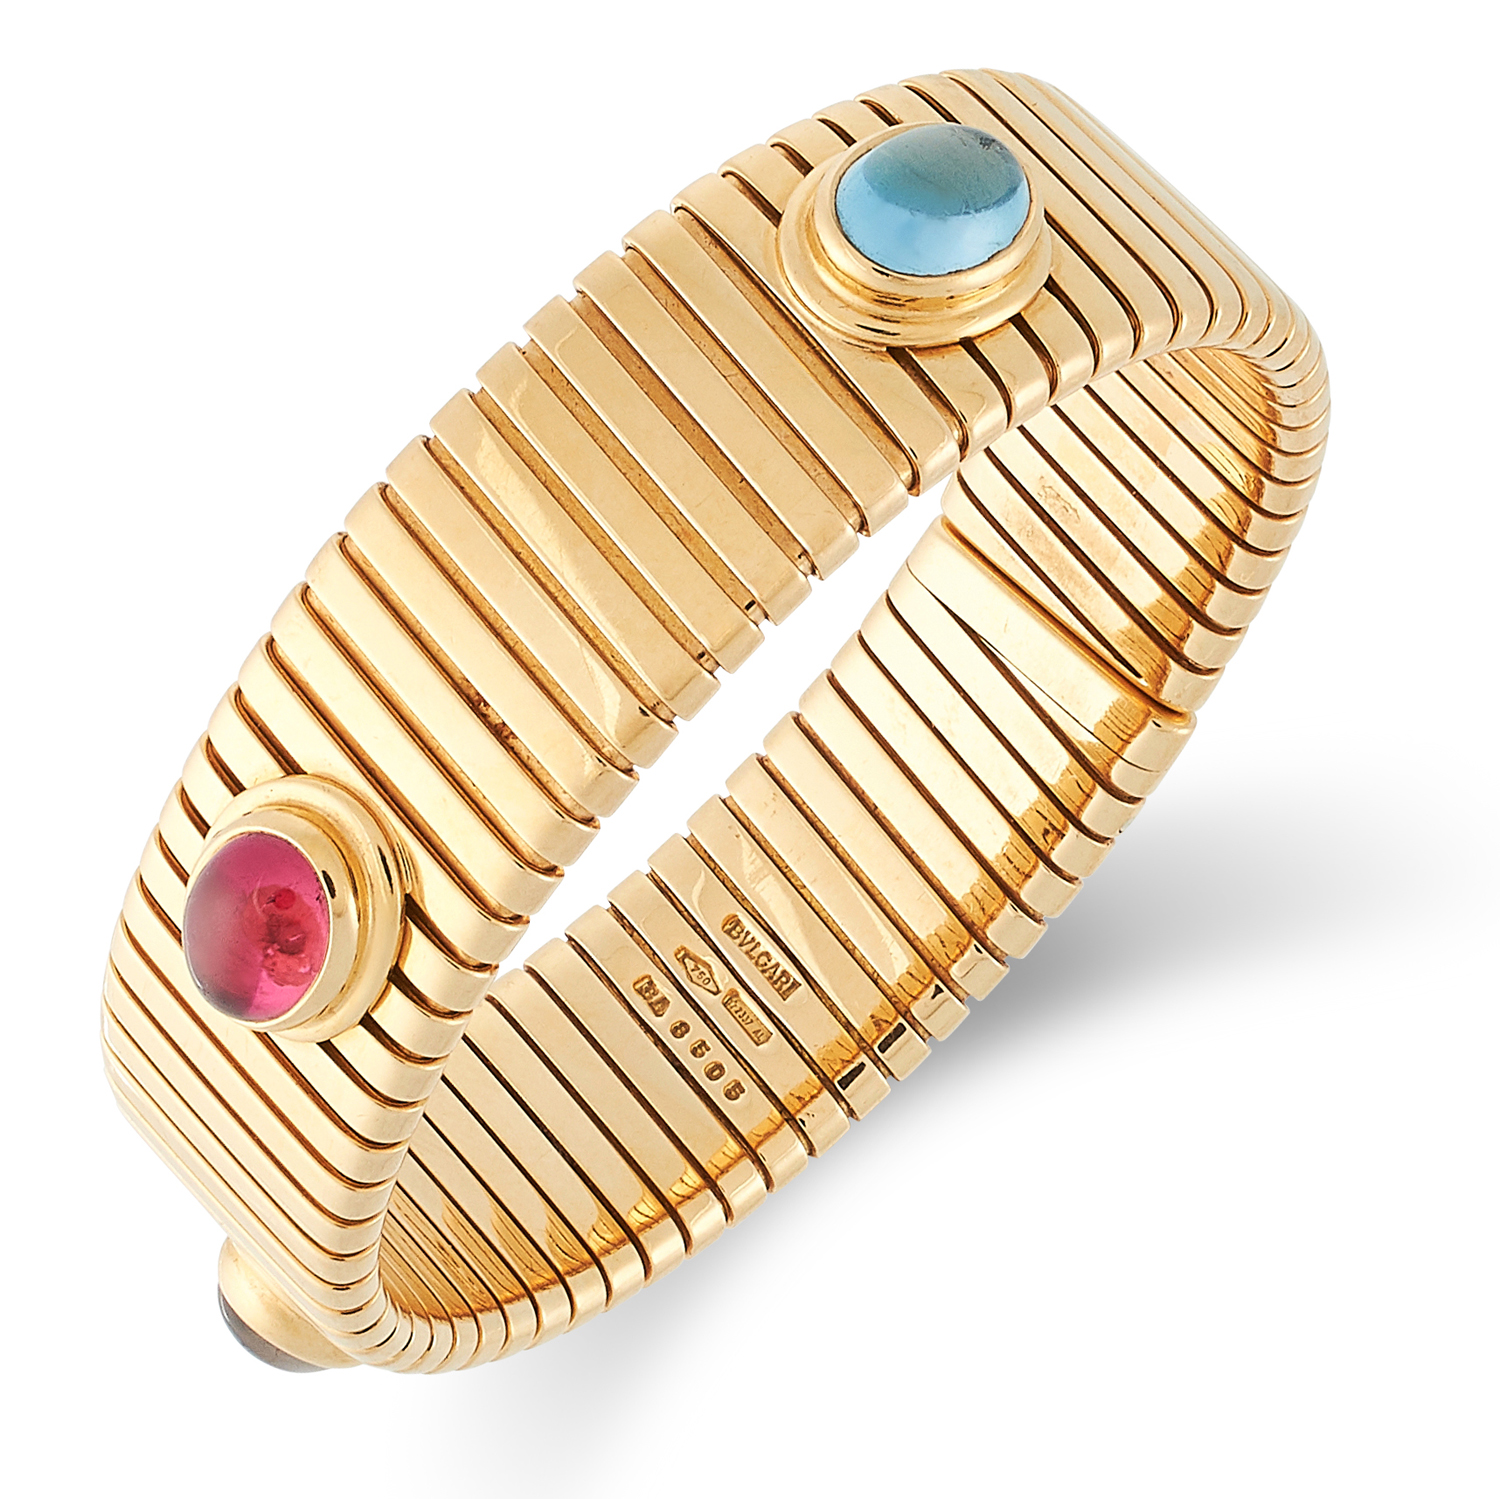 A GEMSET TUBOGAS BRACELET, BULGARI set with a cabochon blue topaz, tourmaline and amethyst, signed - Image 2 of 2